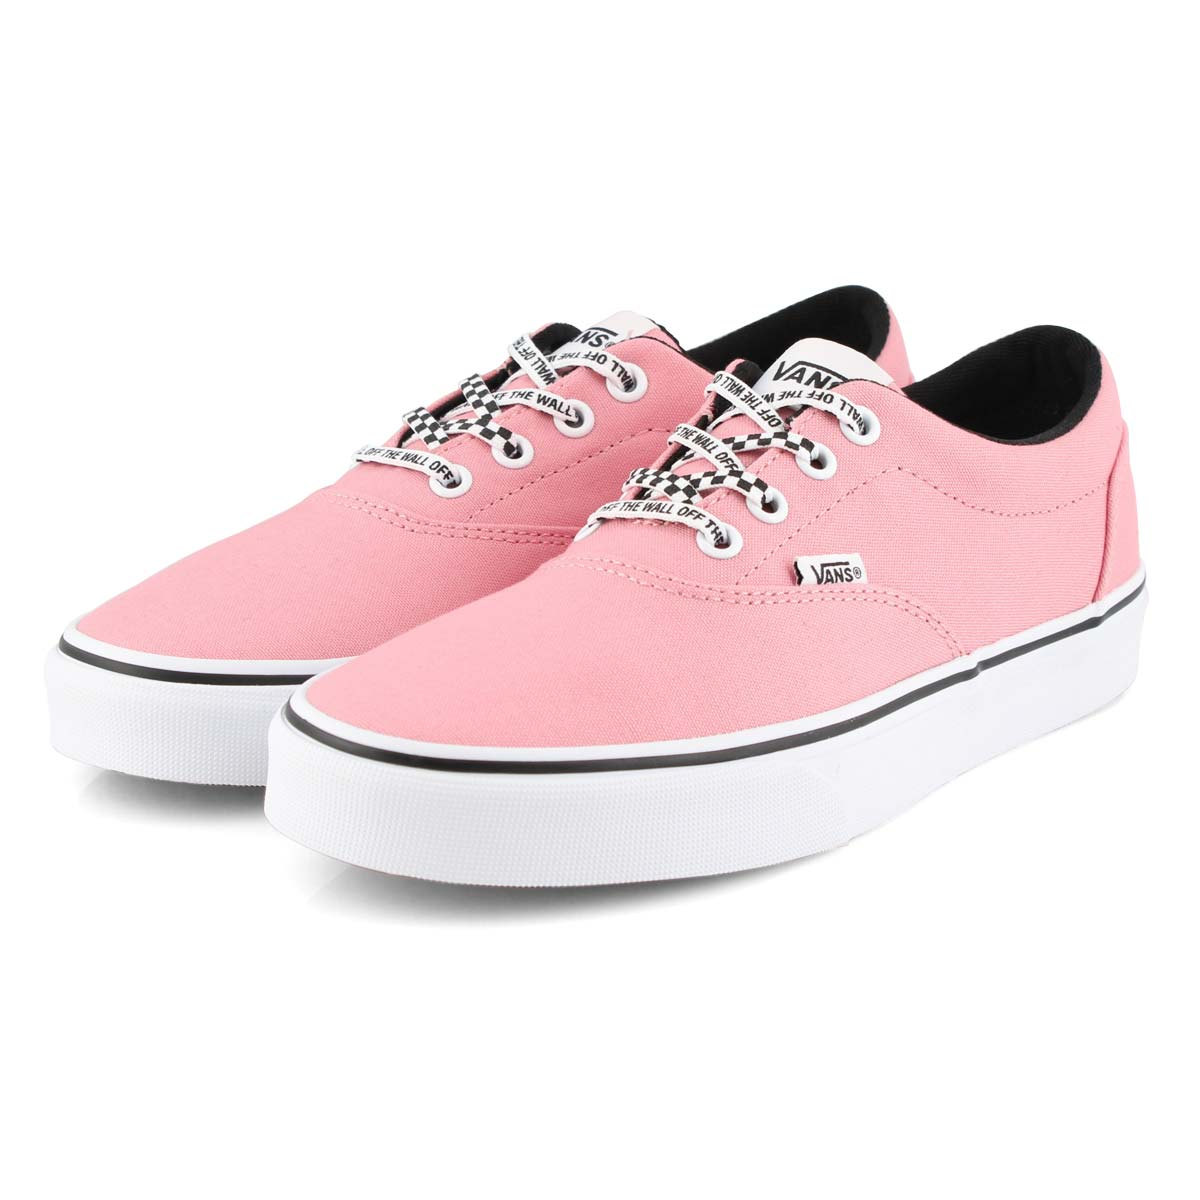 Women's Doheny Sneakers - Pink Icing/White